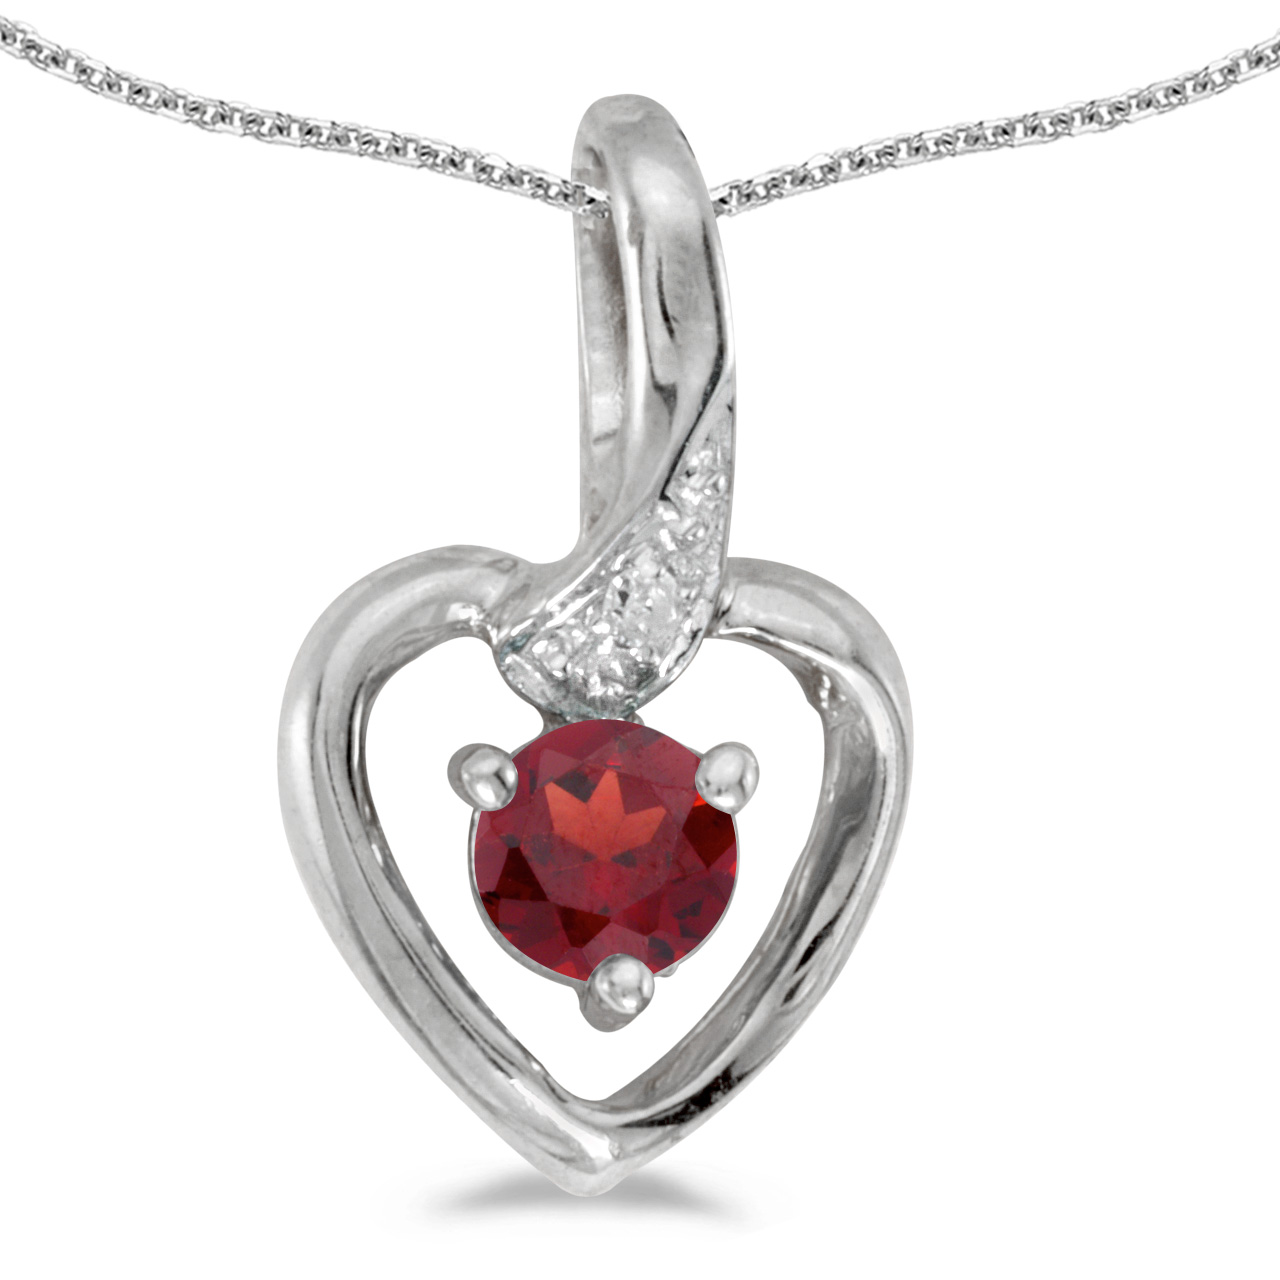 "10k White Gold Round Garnet And Diamond Heart Pendant with 18"" Chain"